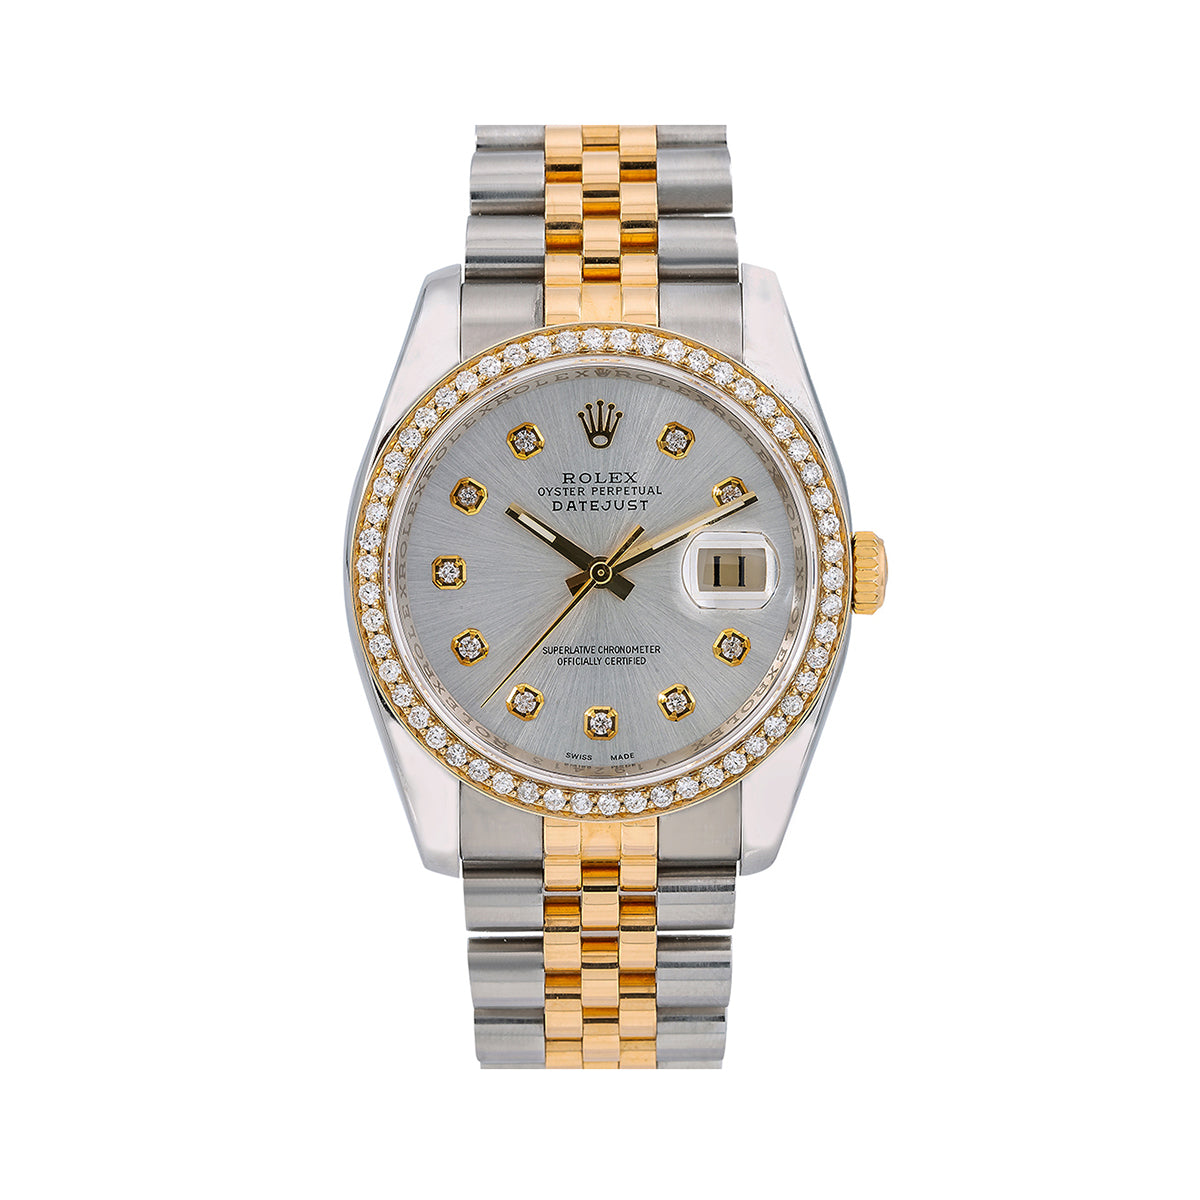 Rolex Datejust Diamond Watch, 116233 36mm, Silver Mother of Pearl Dial With 1.40 CT Diamonds